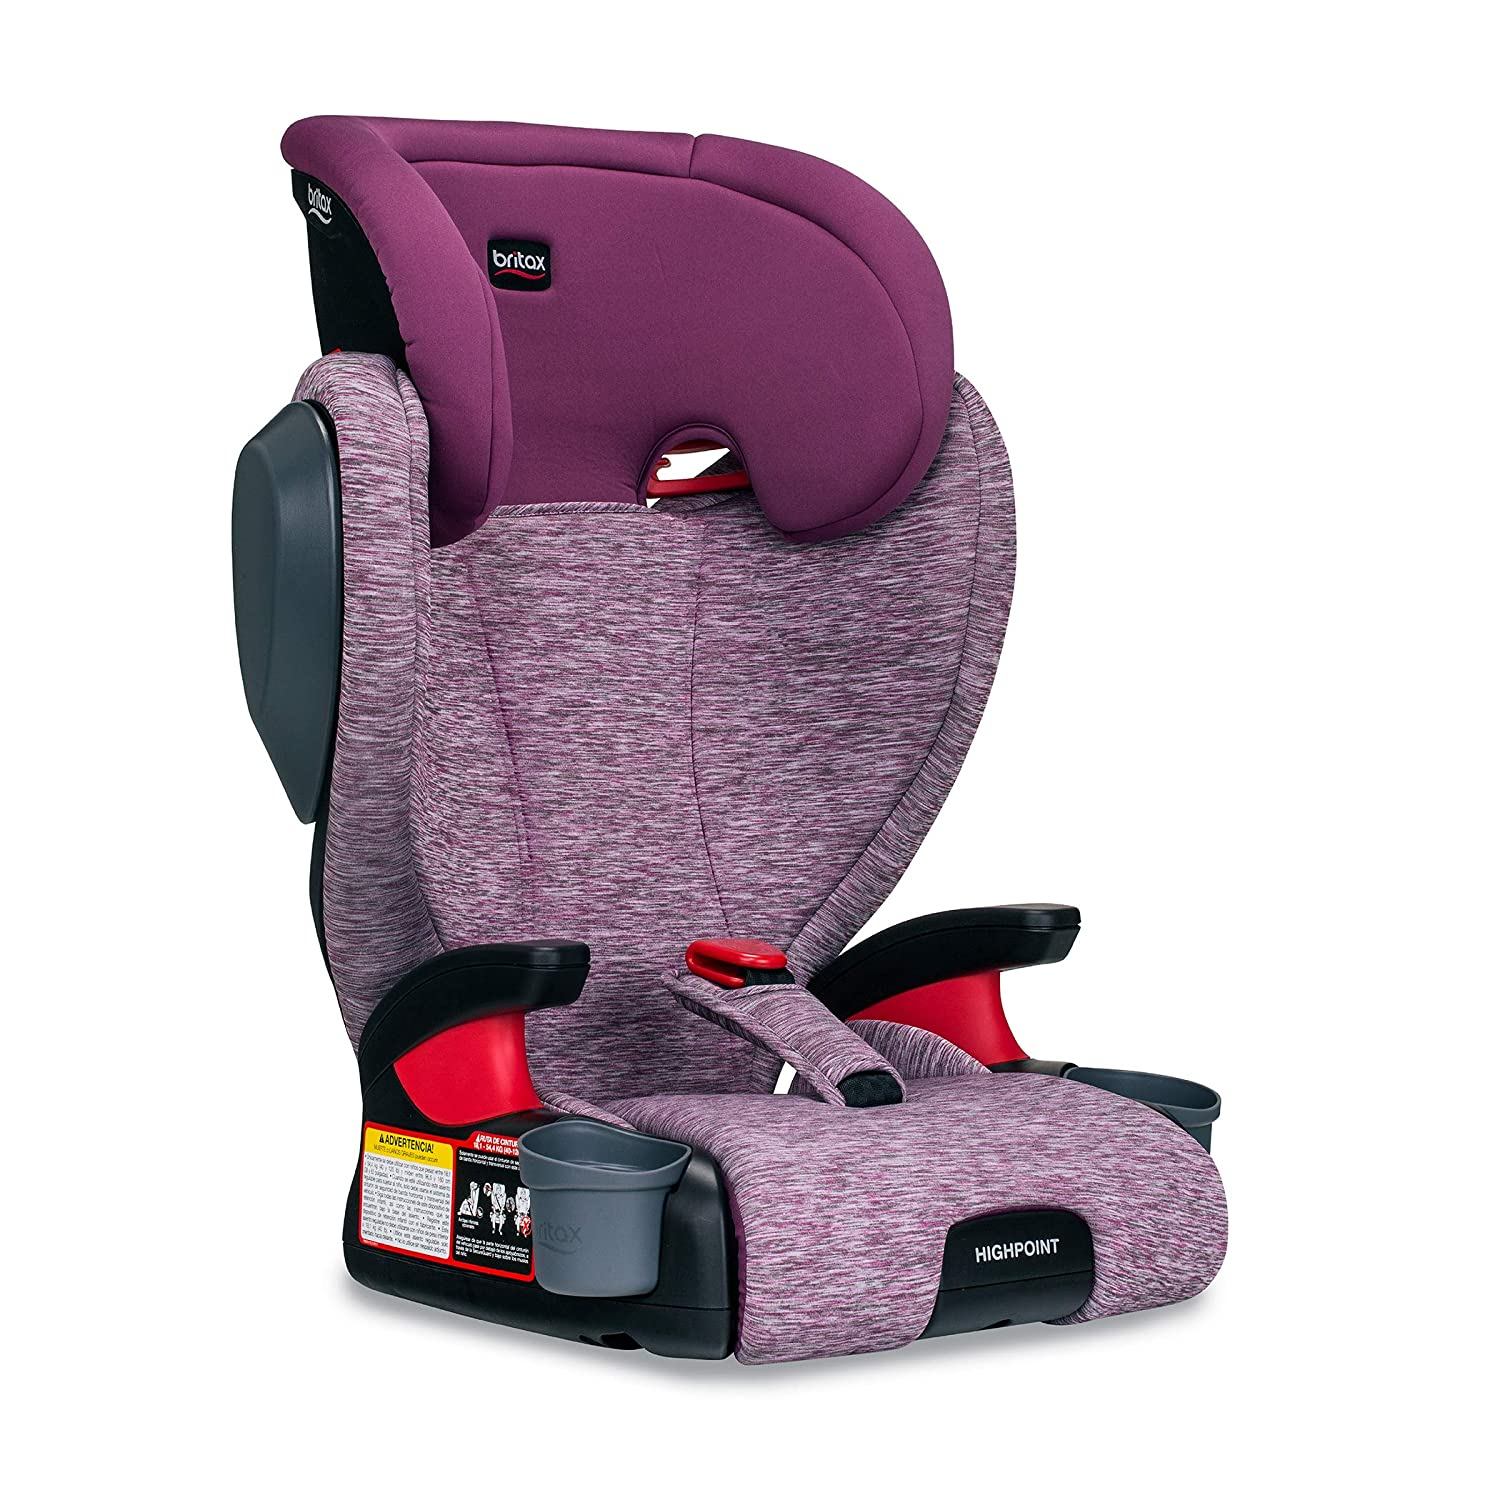 Britax Highpoint Booster Car Seat